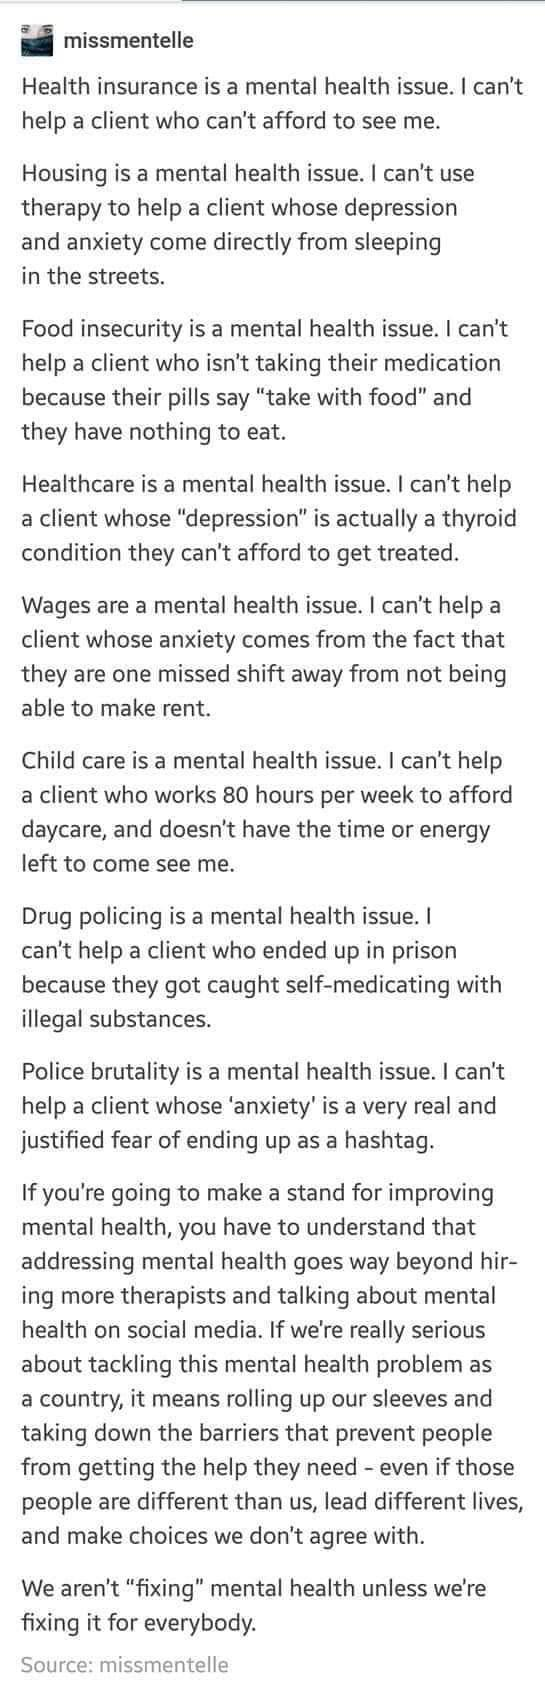 mental health is an important, but complex issue - meme